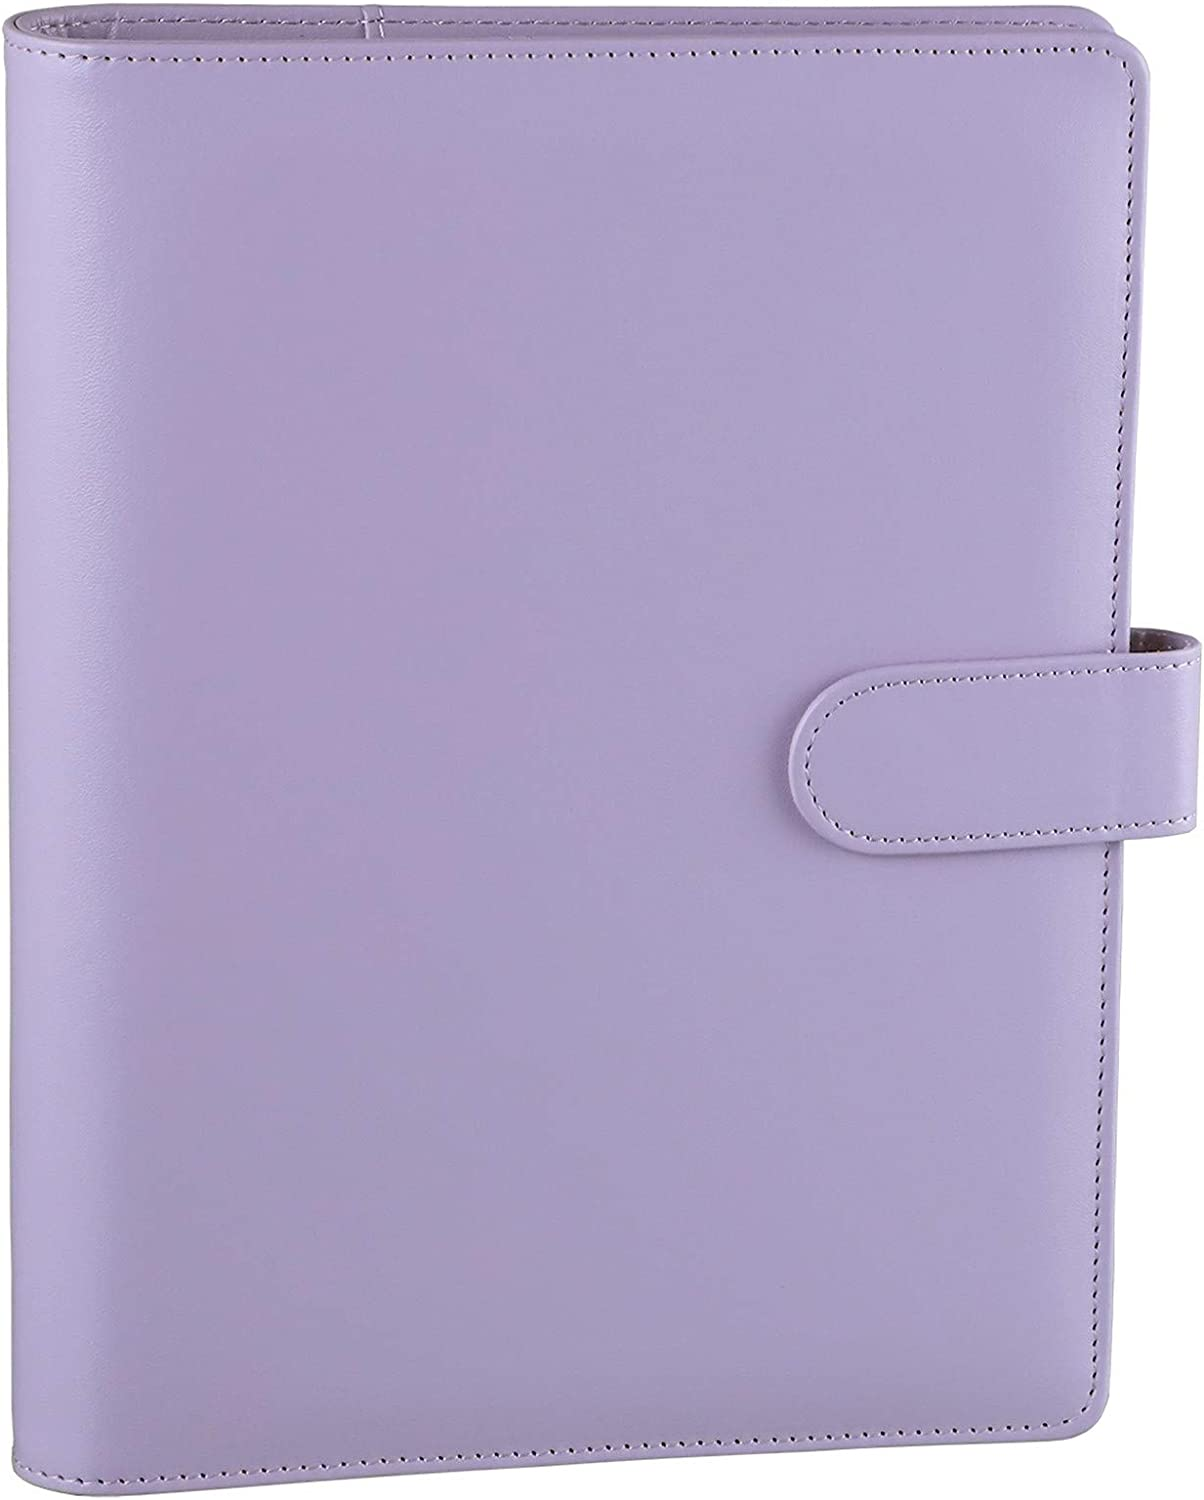 OFFicial site Antner A5 PU Leather Limited time cheap sale Binder 6-Ring for Notebook Cover